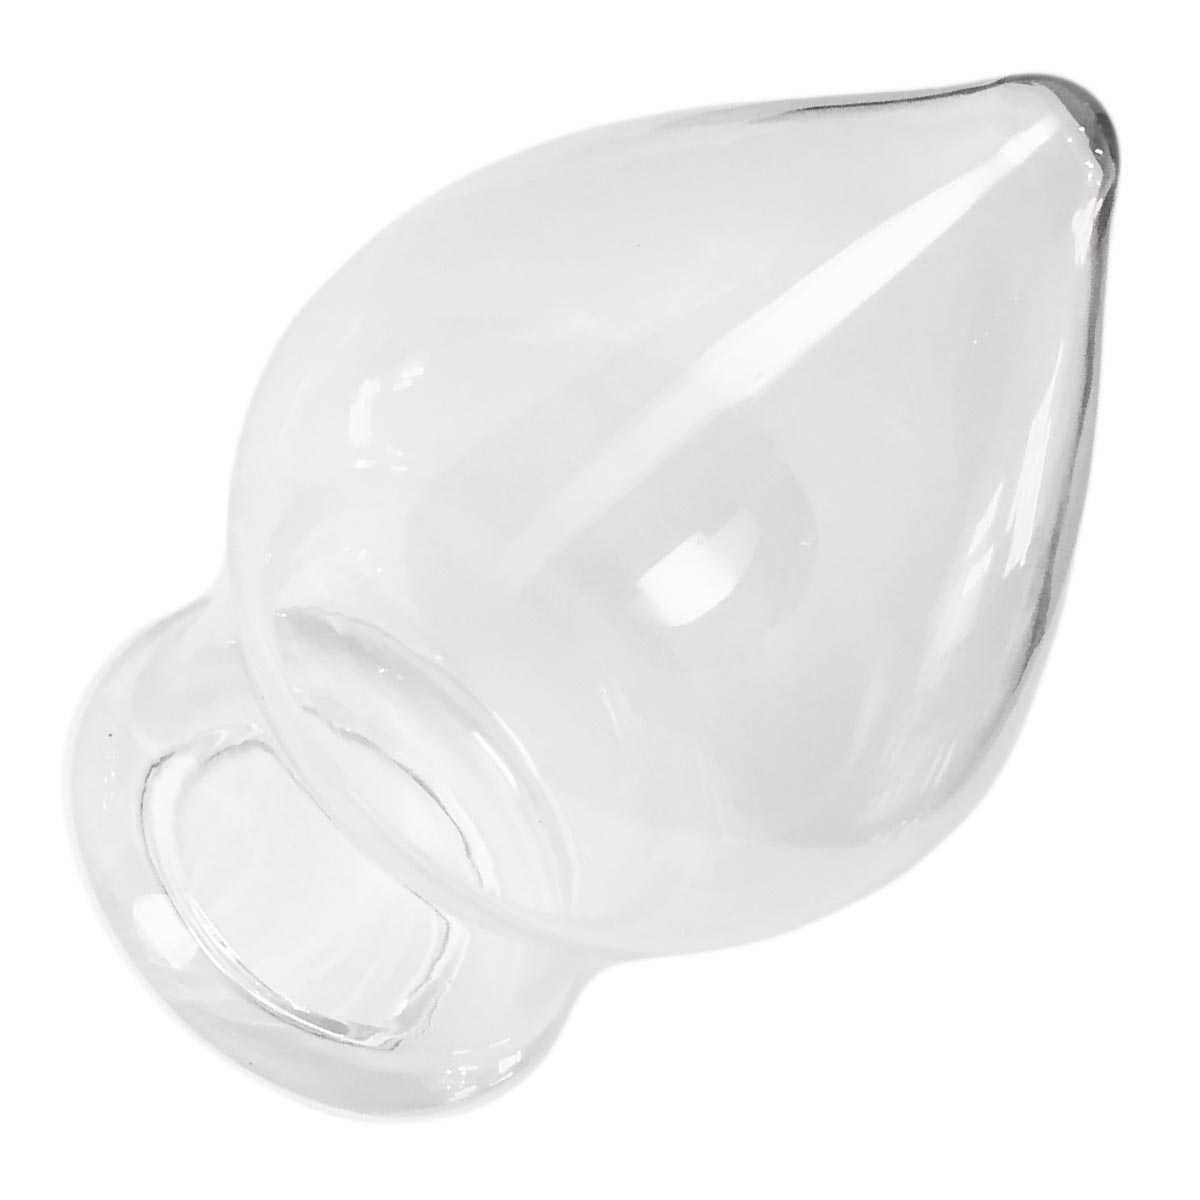 Vunovu XXL Hollow Glass-Plug Clear 12 cm kaufen